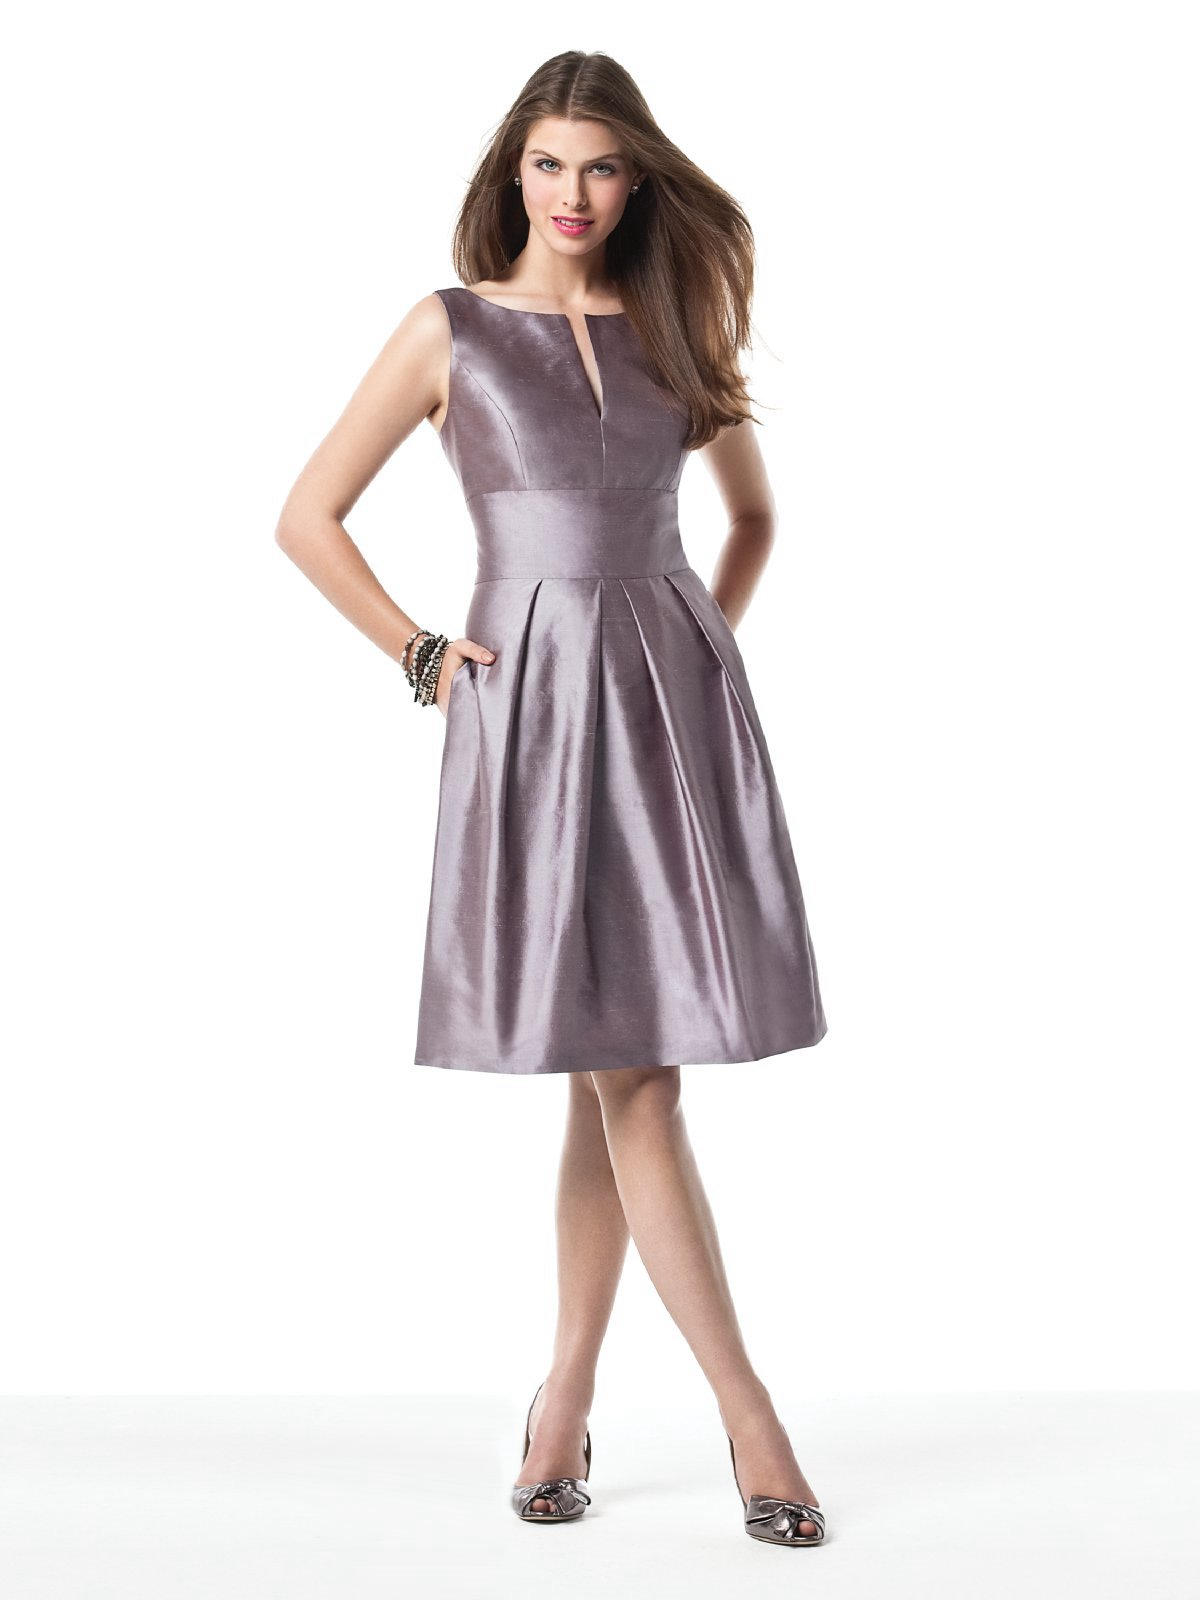 Lavender A Line Sleeveless And Bateau Low Back Knee Length Prom Dresses With Draped Skirt